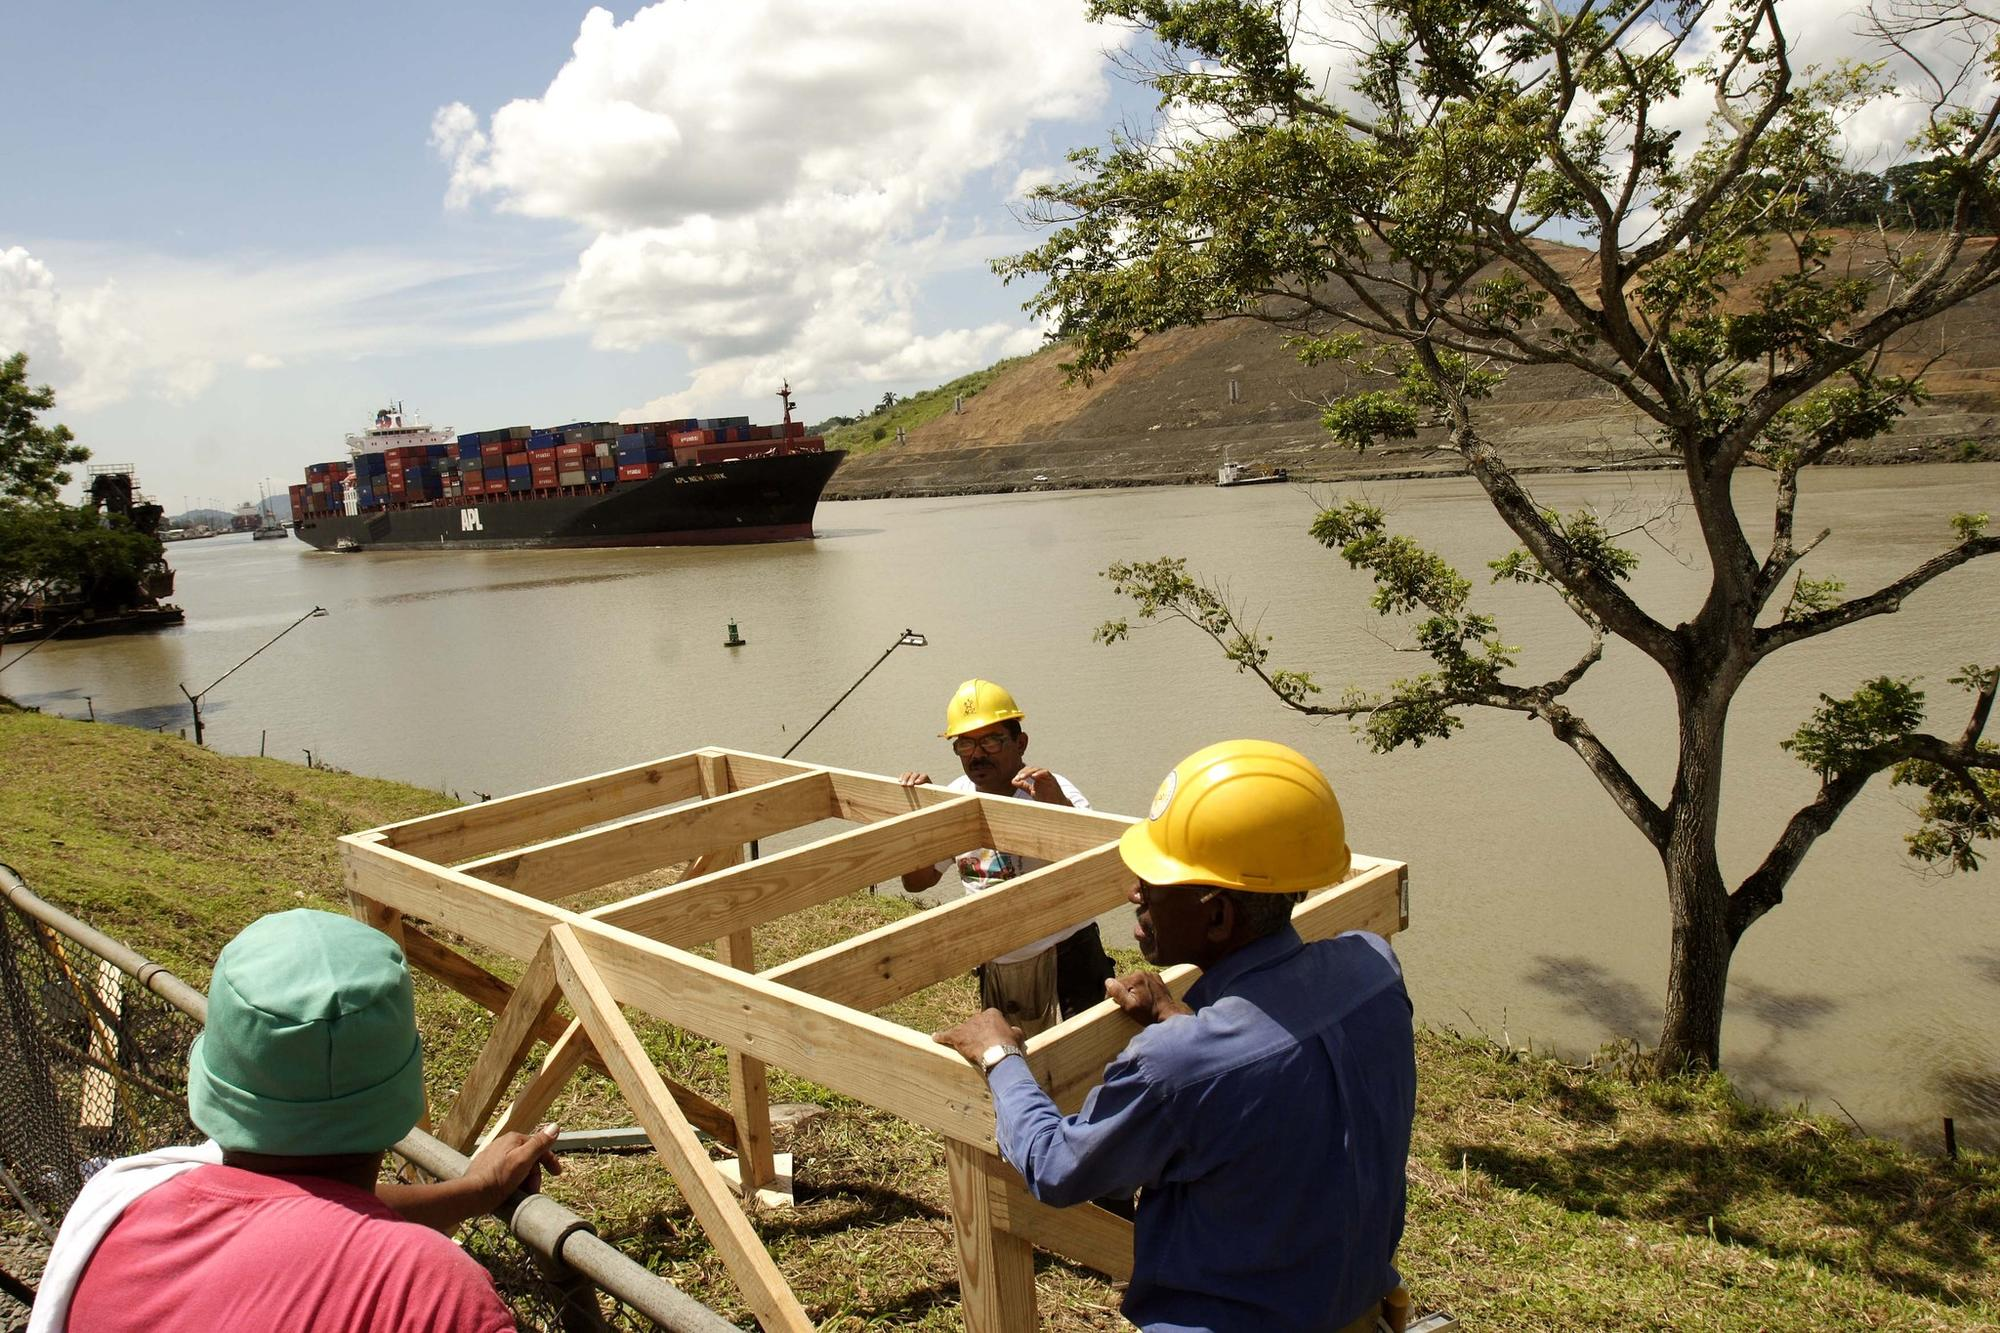 Workers along the Panama Canal in Paraiso, on the outskirts of Panama City, in 2007.